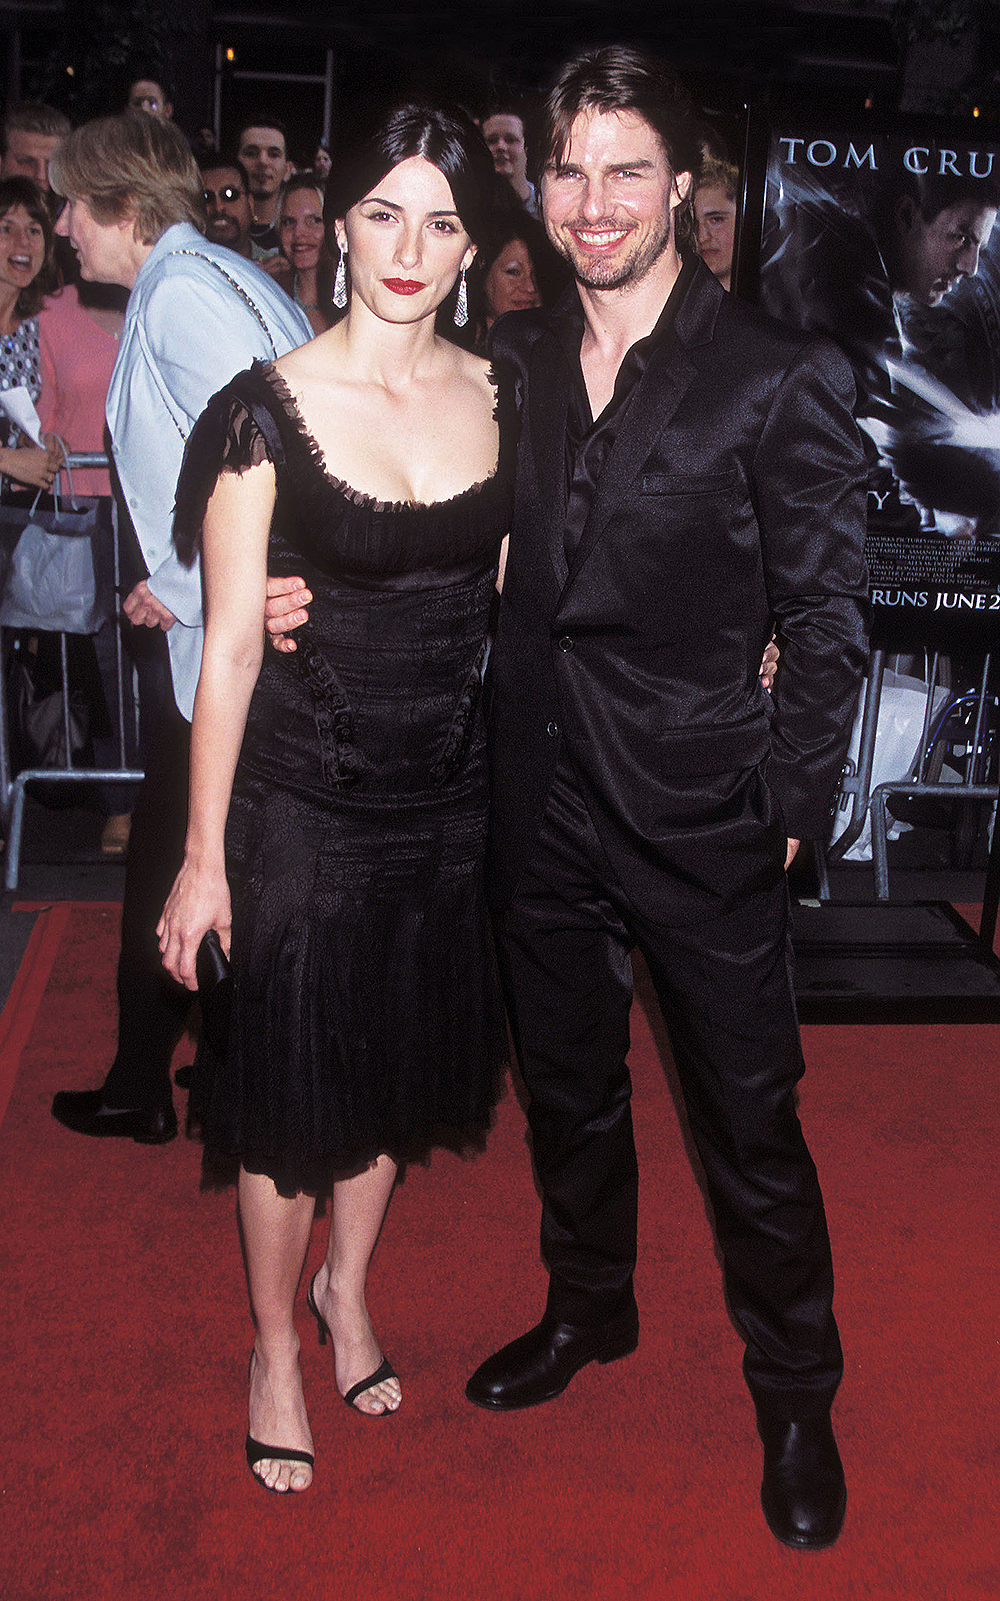 """Photo by: Henry Lamb/Photo Wire/STAR MAX, Inc. copyright 2002ALL RIGHTS RESERVED Telephone/Fax: (212) 995-1196 6/17/02 Tom Cruise and Penelope Cruz at the premiere of """"Minority Report"""". (NYC) (Star Max via AP Images)"""